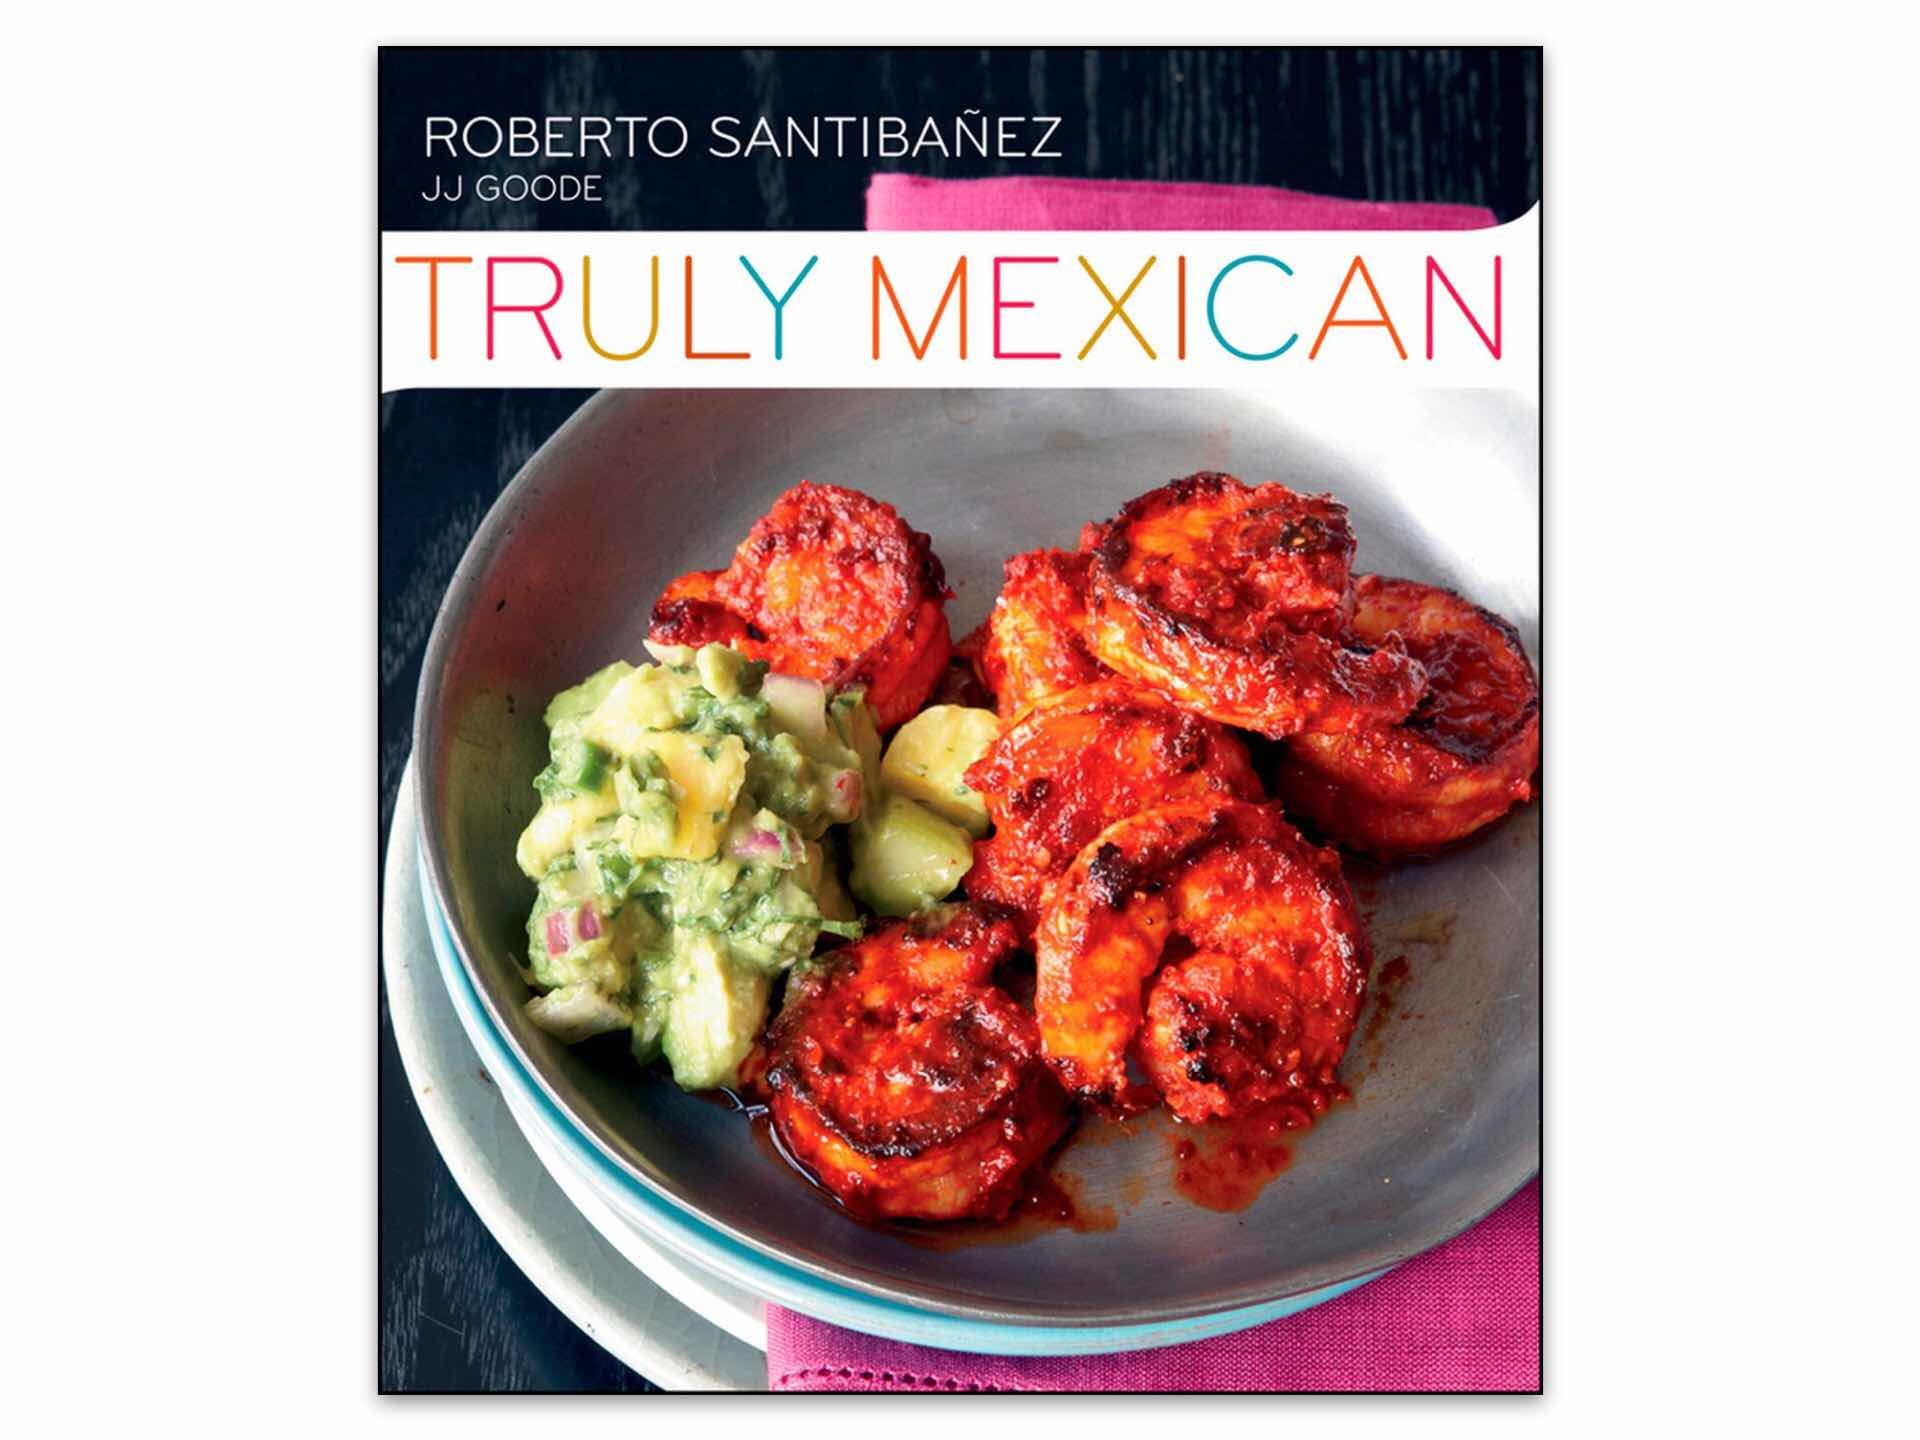 Truly Mexican by Roberto Santibaez and JJ Goode. ($25 hardcover)